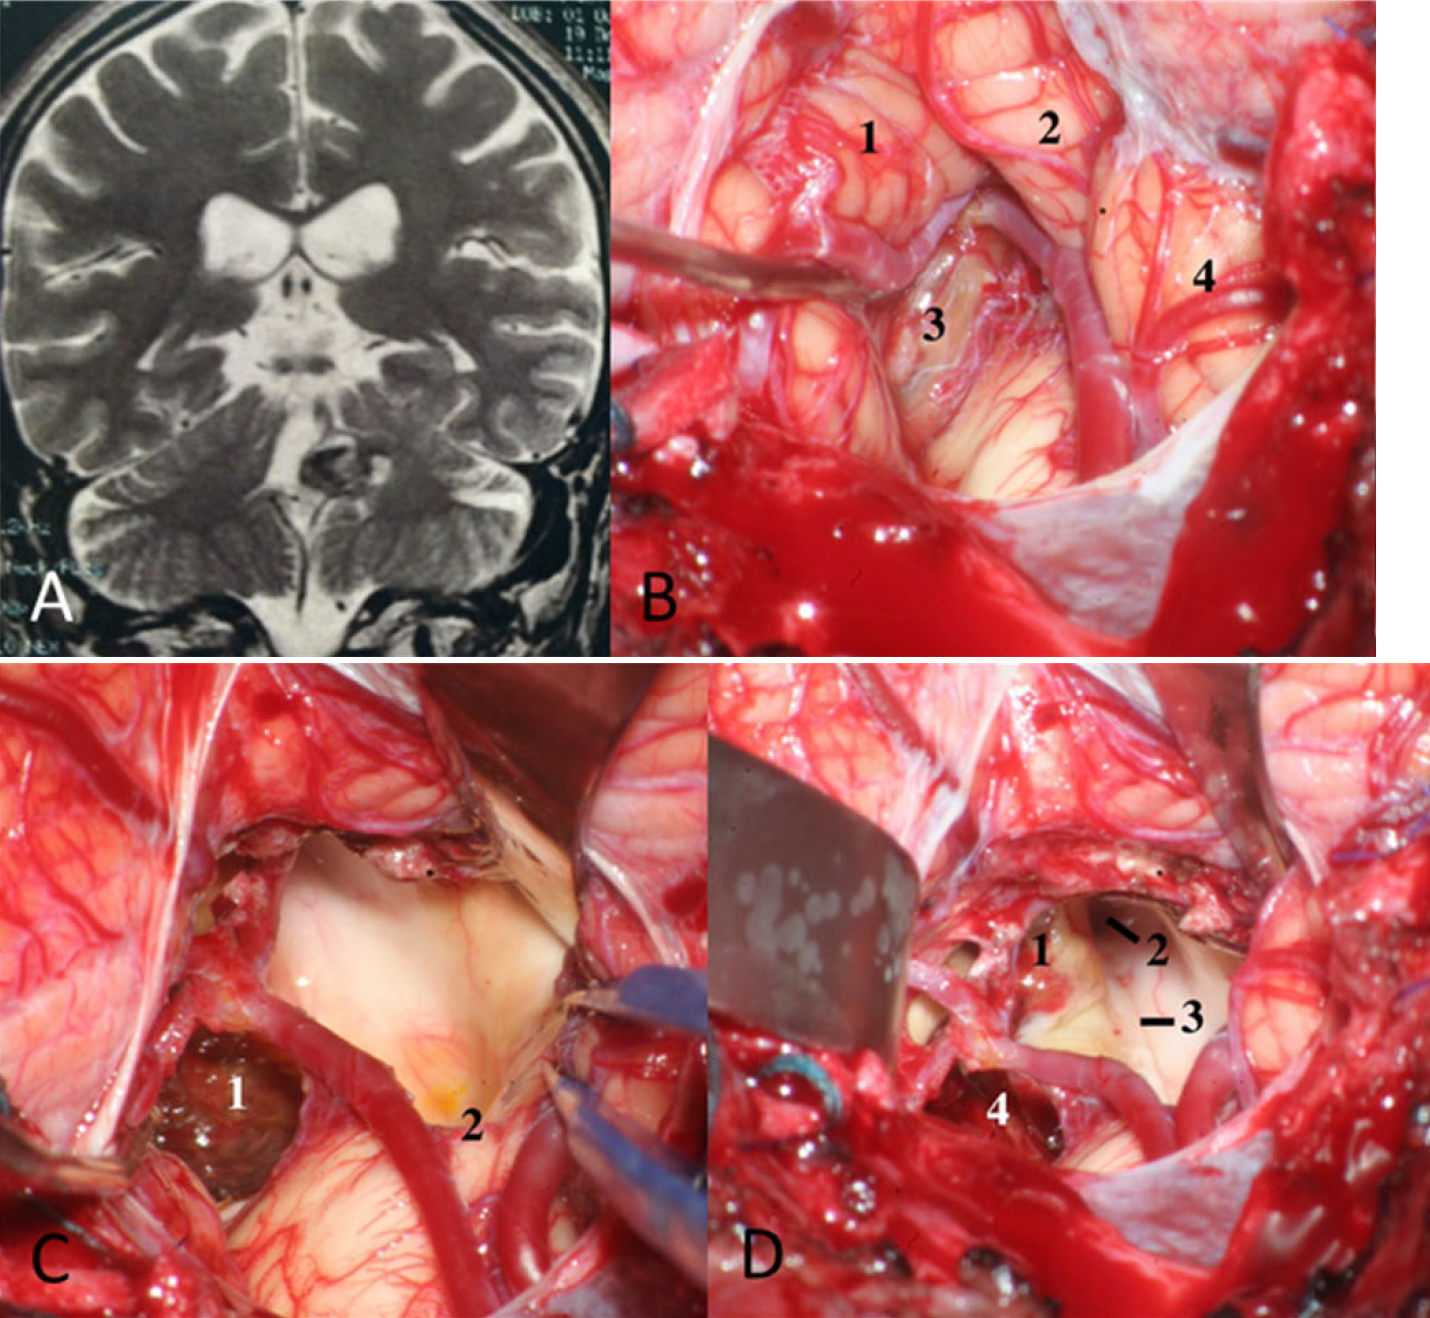 Figure 19.  Removal of the tonsil. a T2 coronal MRI showing a cavernoma at the confluence of the cerebellar peduncles. b The left tonsil is being retracted to show the tela choroidea at the level of the left lateral recess: 1 left tonsil, 2 uvula, 3 tela choroidea at the level of the lateral recess, and 4 right tonsil. c Final view after resection of the cavernoma: 1 Resection of the cavernoma, and 2 obex. d The left tonsil was removed to better expose the area of the confluence of the cerebellar peduncles: 1 superior cerebellar peduncle, 2 cerebral aqueduct, 3 median sulcus, and 4 resection of the cavernoma. (Images courtesy of AL Rhoton, Jr.)